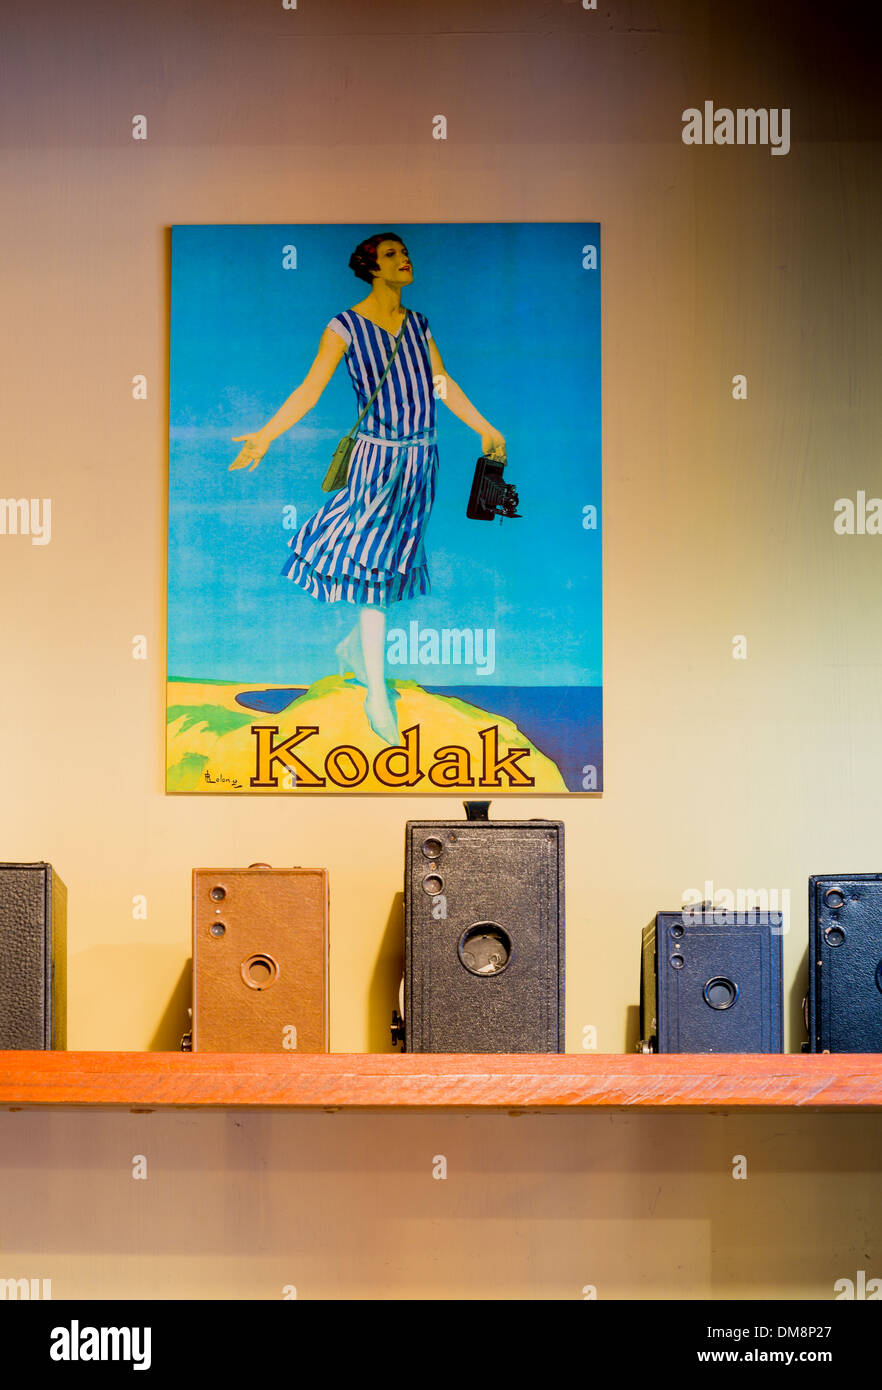 Kodak poster and cameras, Burnaby Village Museum, Burnaby, British Columbia, Canada - Stock Image